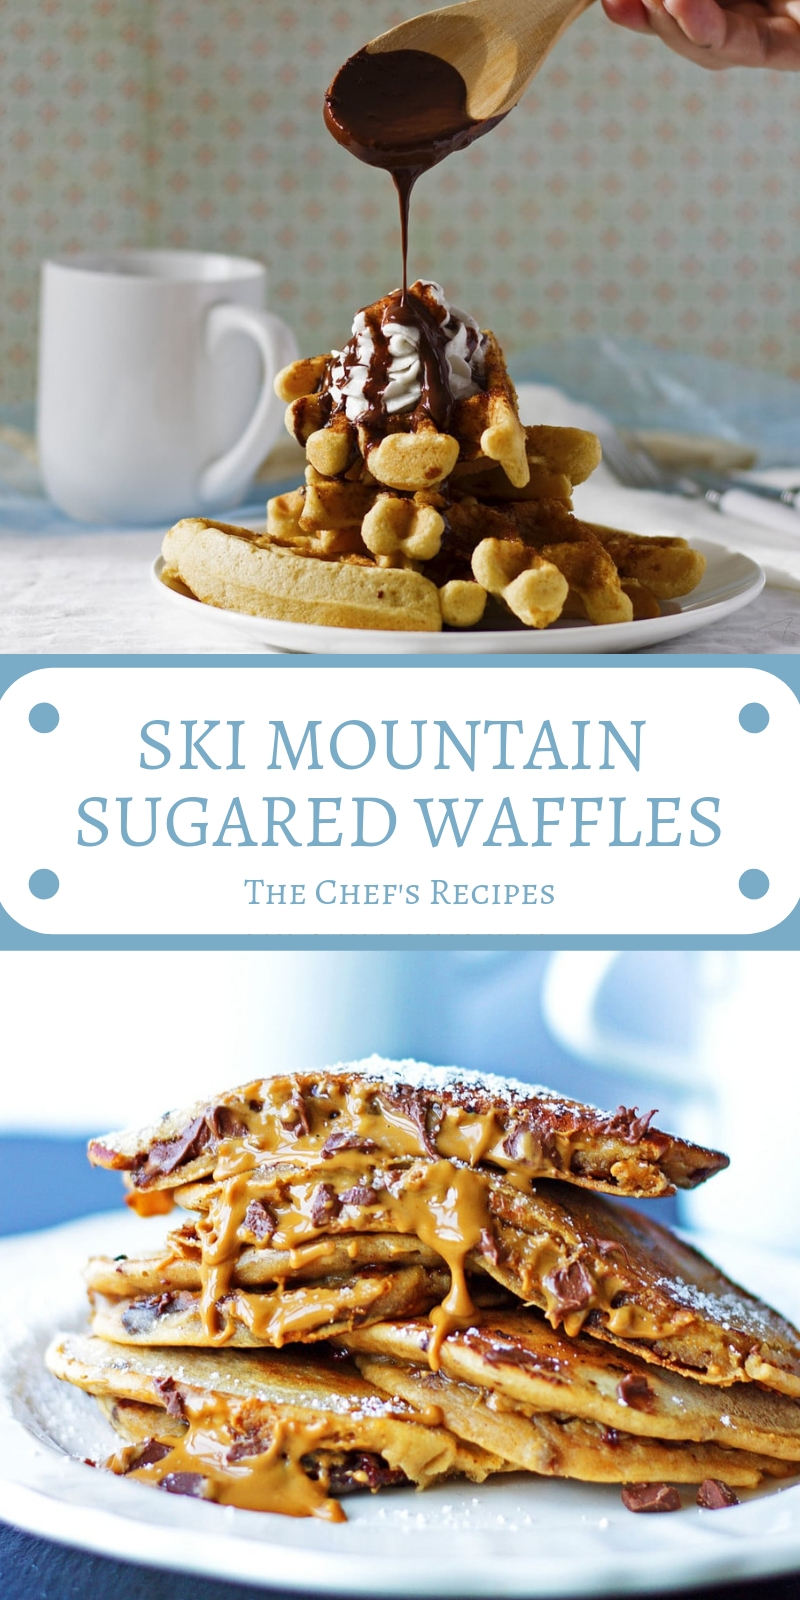 SKI MOUNTAIN SUGARED WAFFLES